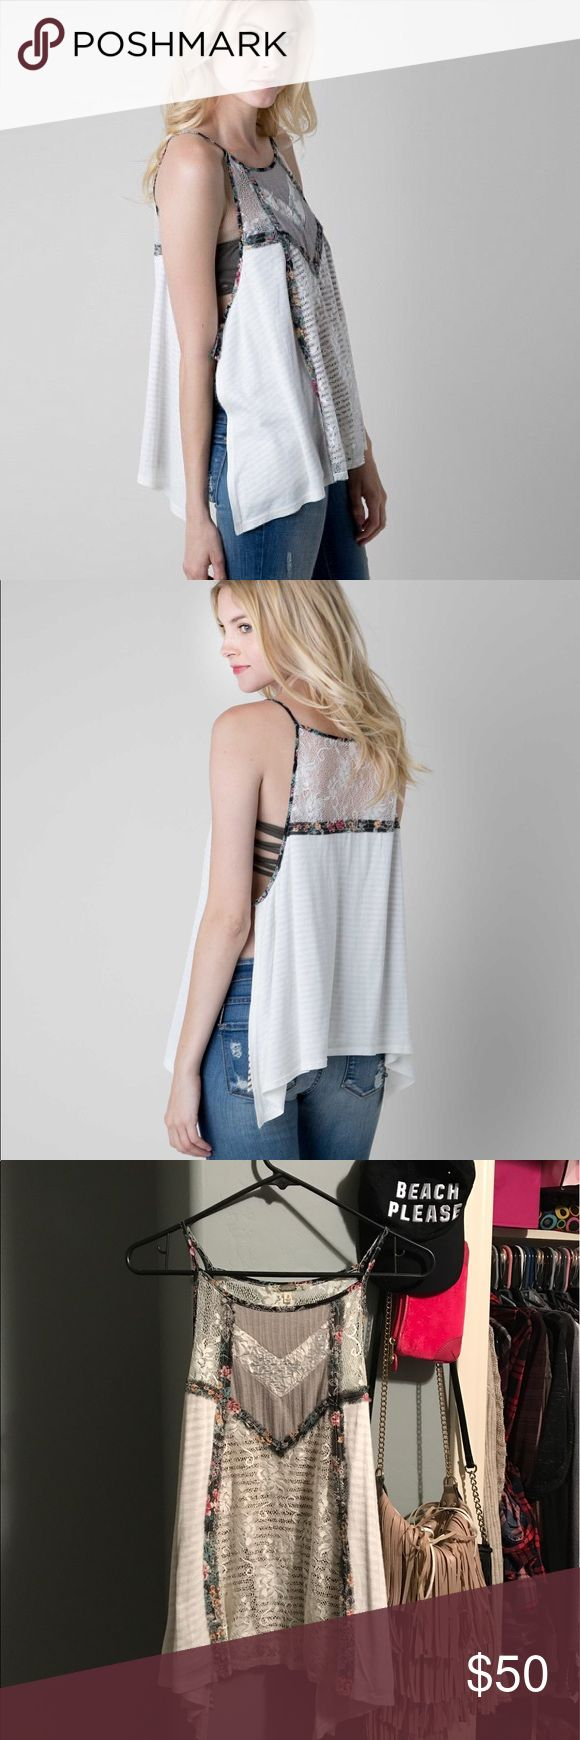 Gimmicks BKE Pieced Tank Small Cheaper on Ⓜ️ercari !! Sold out gimmicks bke from buckle Pieced cami tank size small! Is loose fitting so will fit sizes extra small to medium! Open on the sides and ties. Worn only once so it's like new!  ❌No trades. No holds. ❌  Free people, one teaspoon, miss me, rock Revival Buckle Tops Camisoles